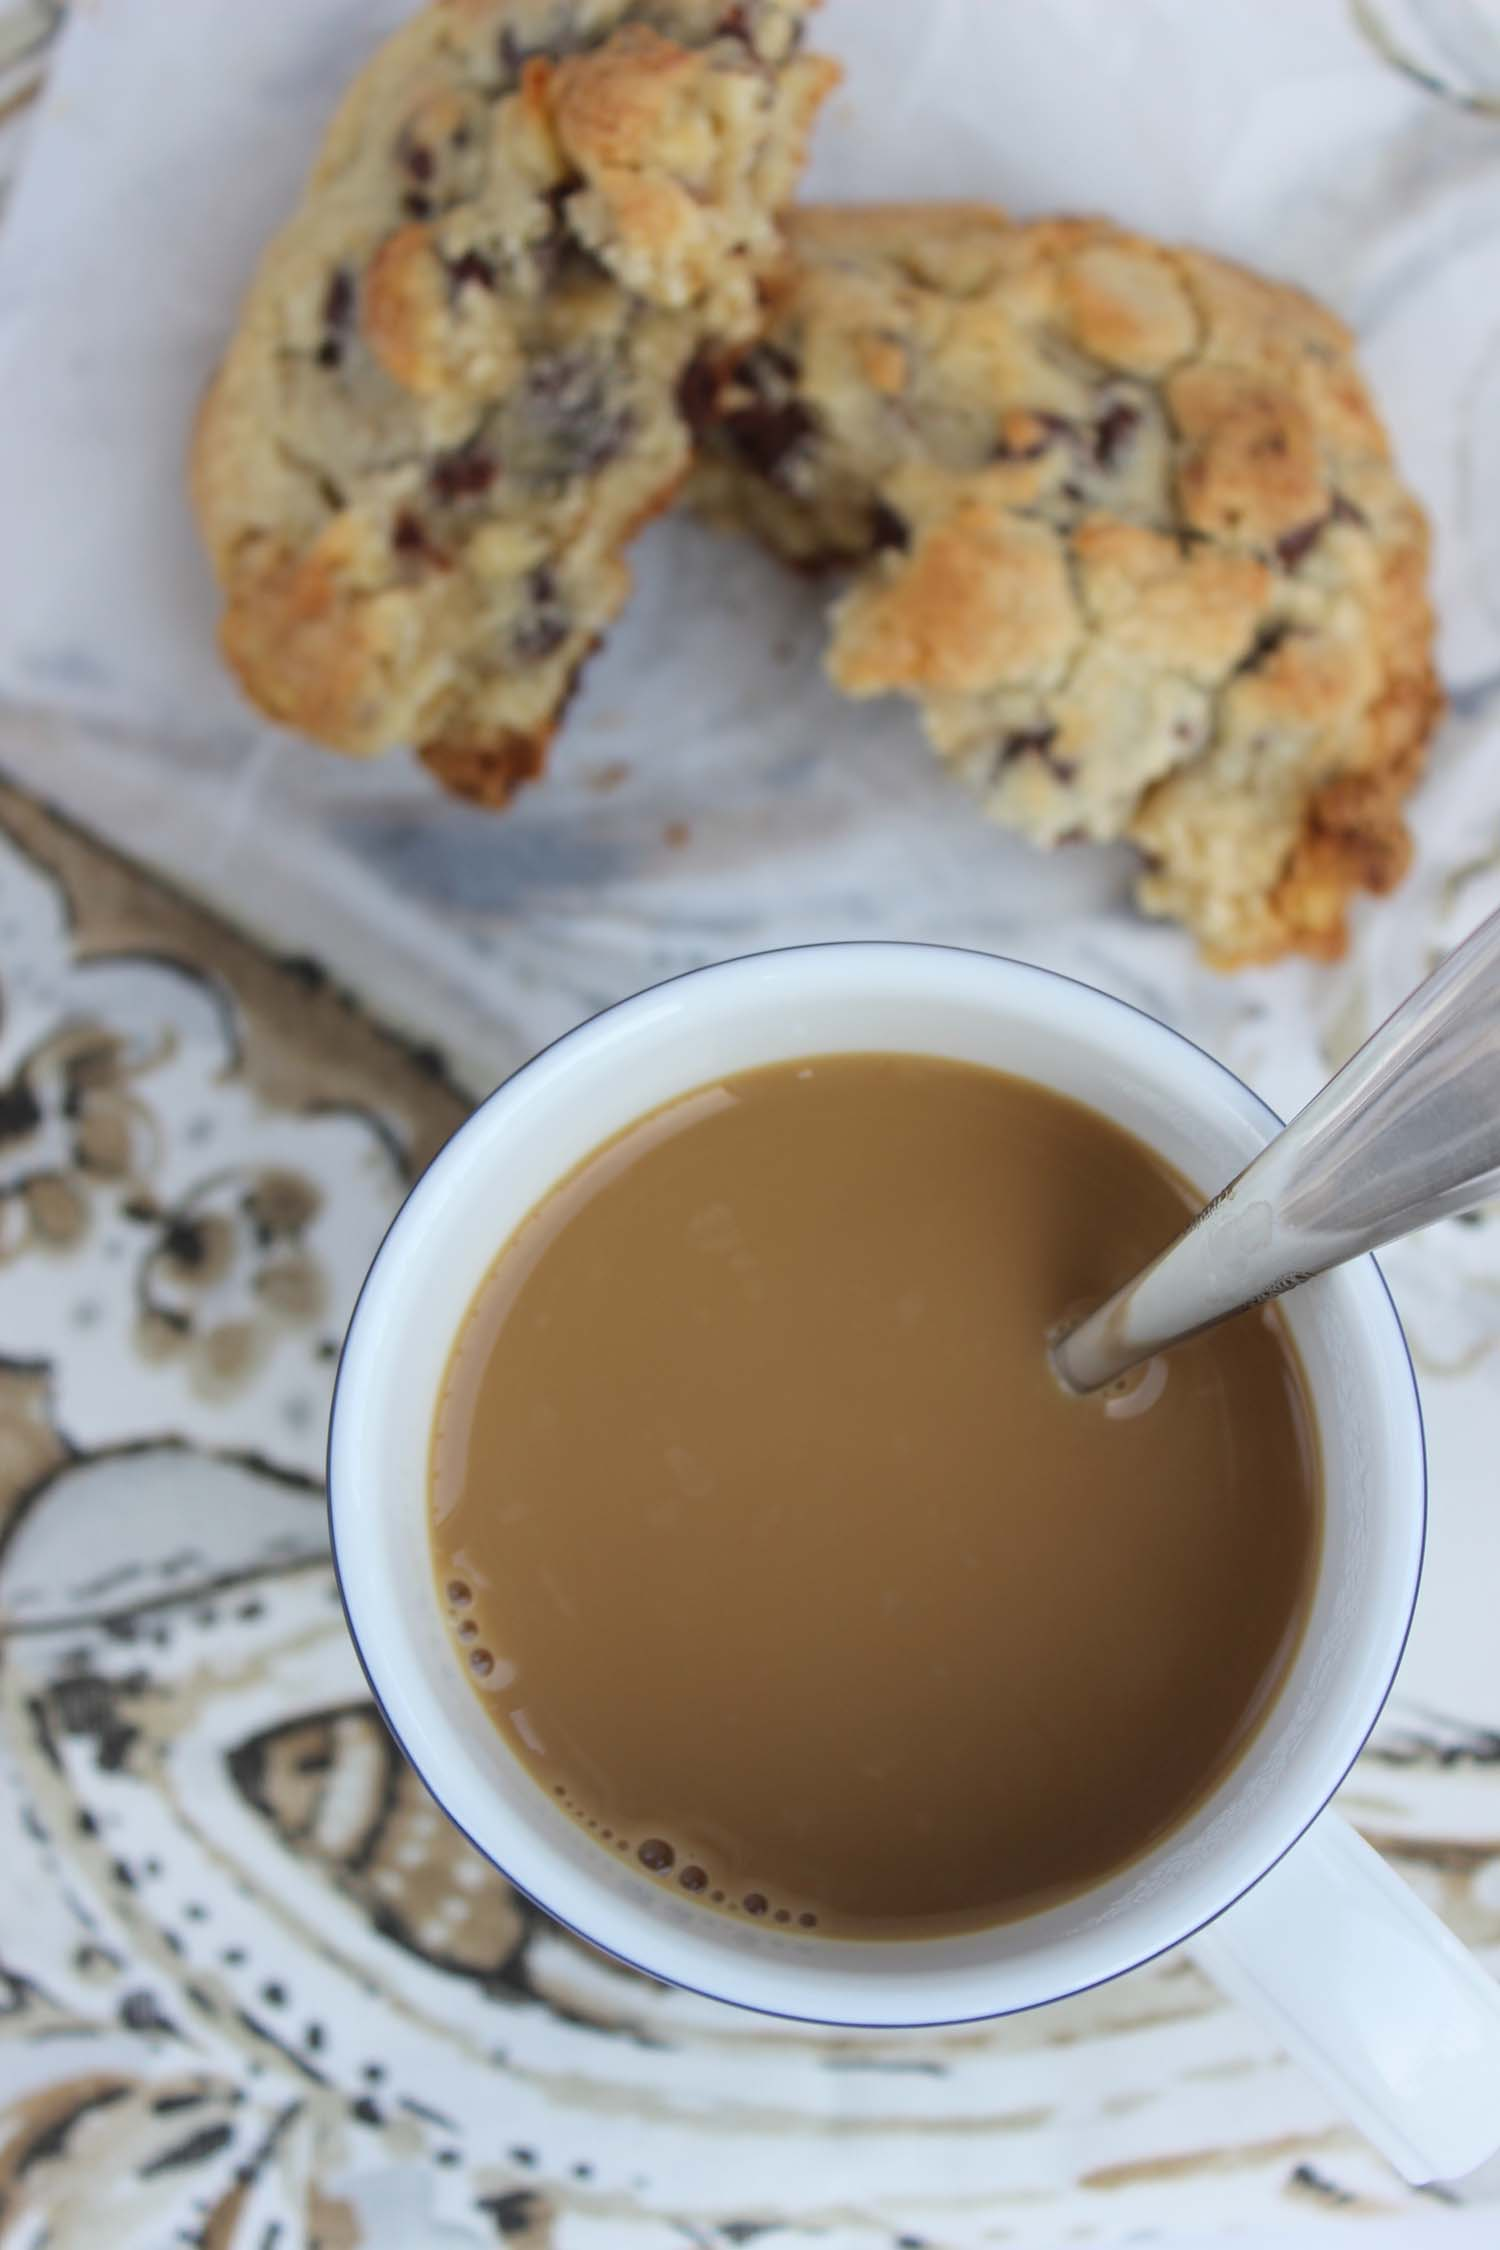 Chocolate Chip Walnut Cookie by Levain Bakery   | Image:   Laura Messersmith